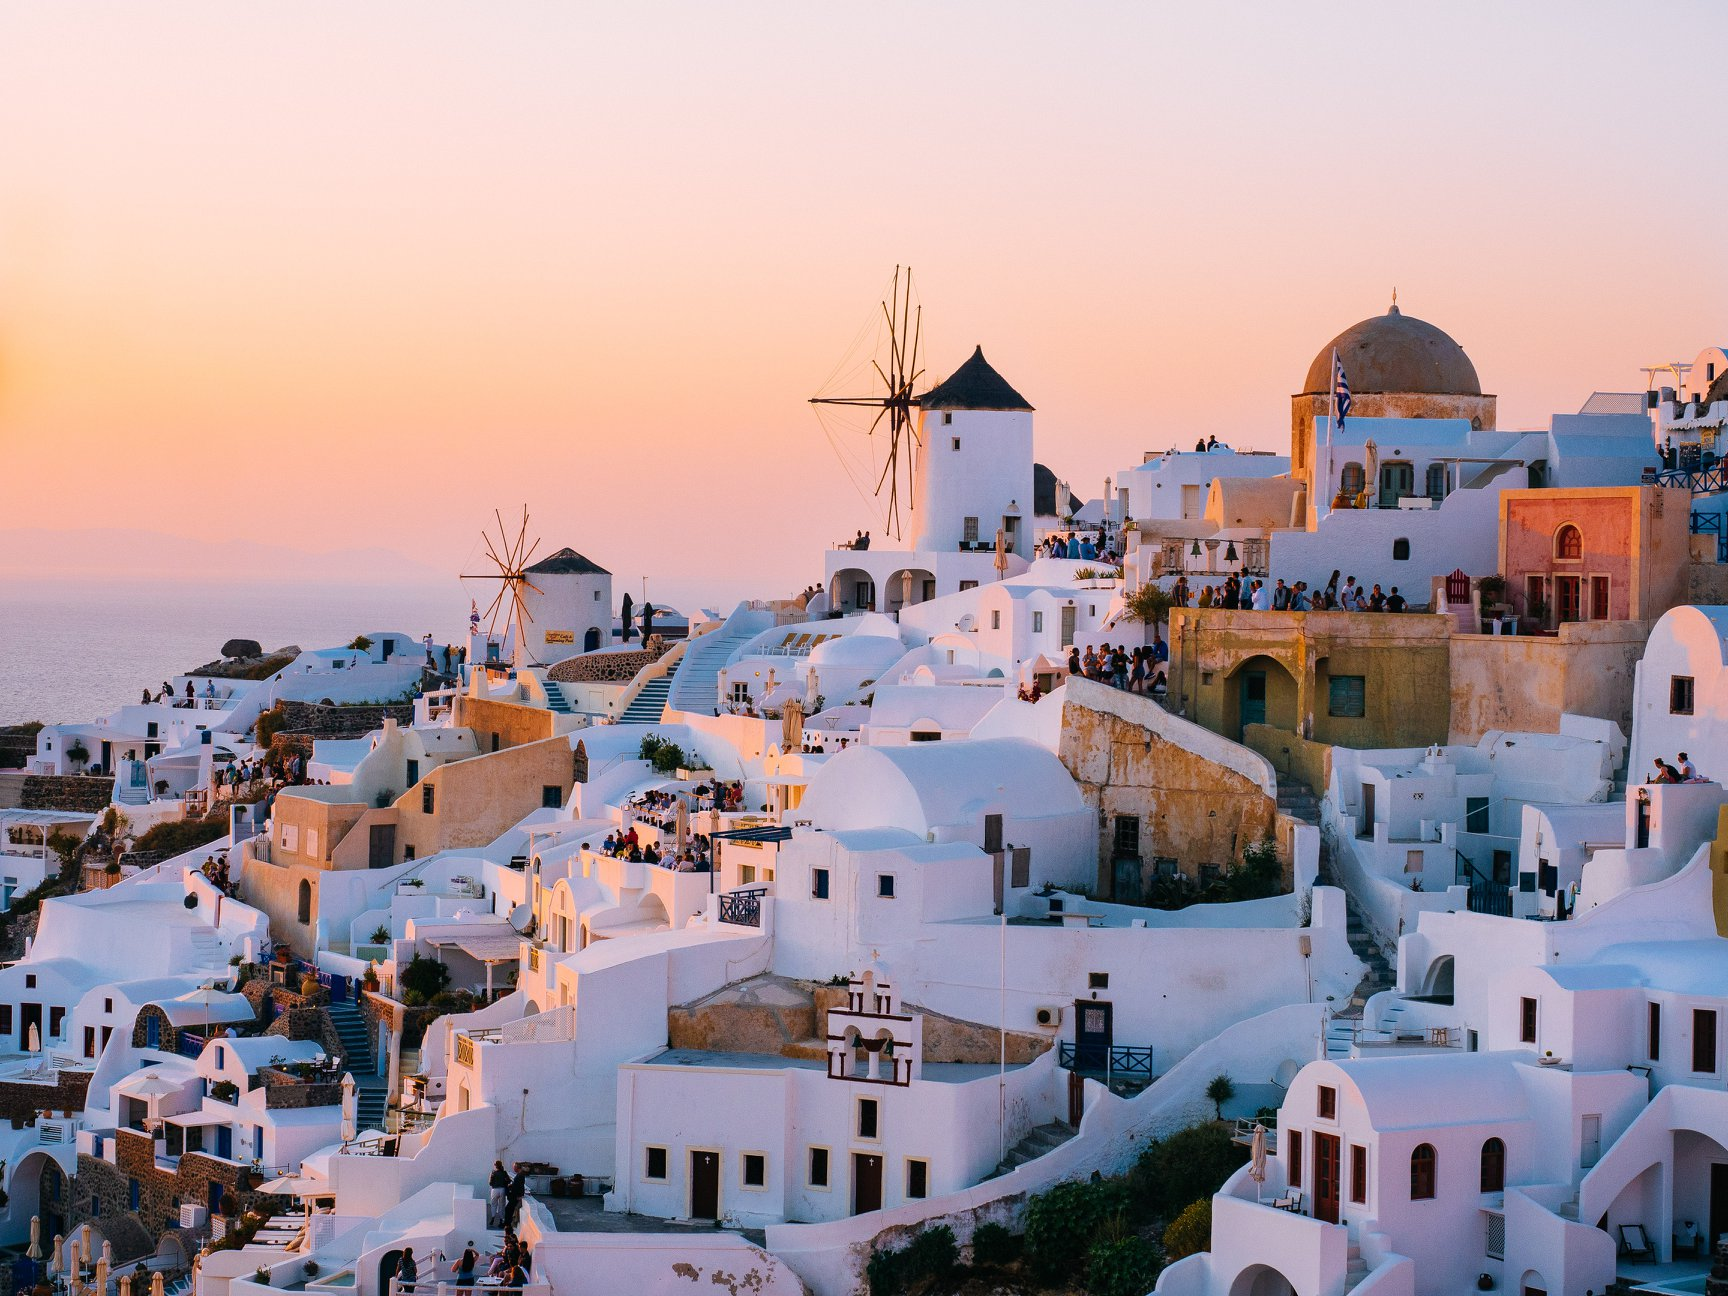 Santorini is one of the Cyclades islands in the Aegean Sea.